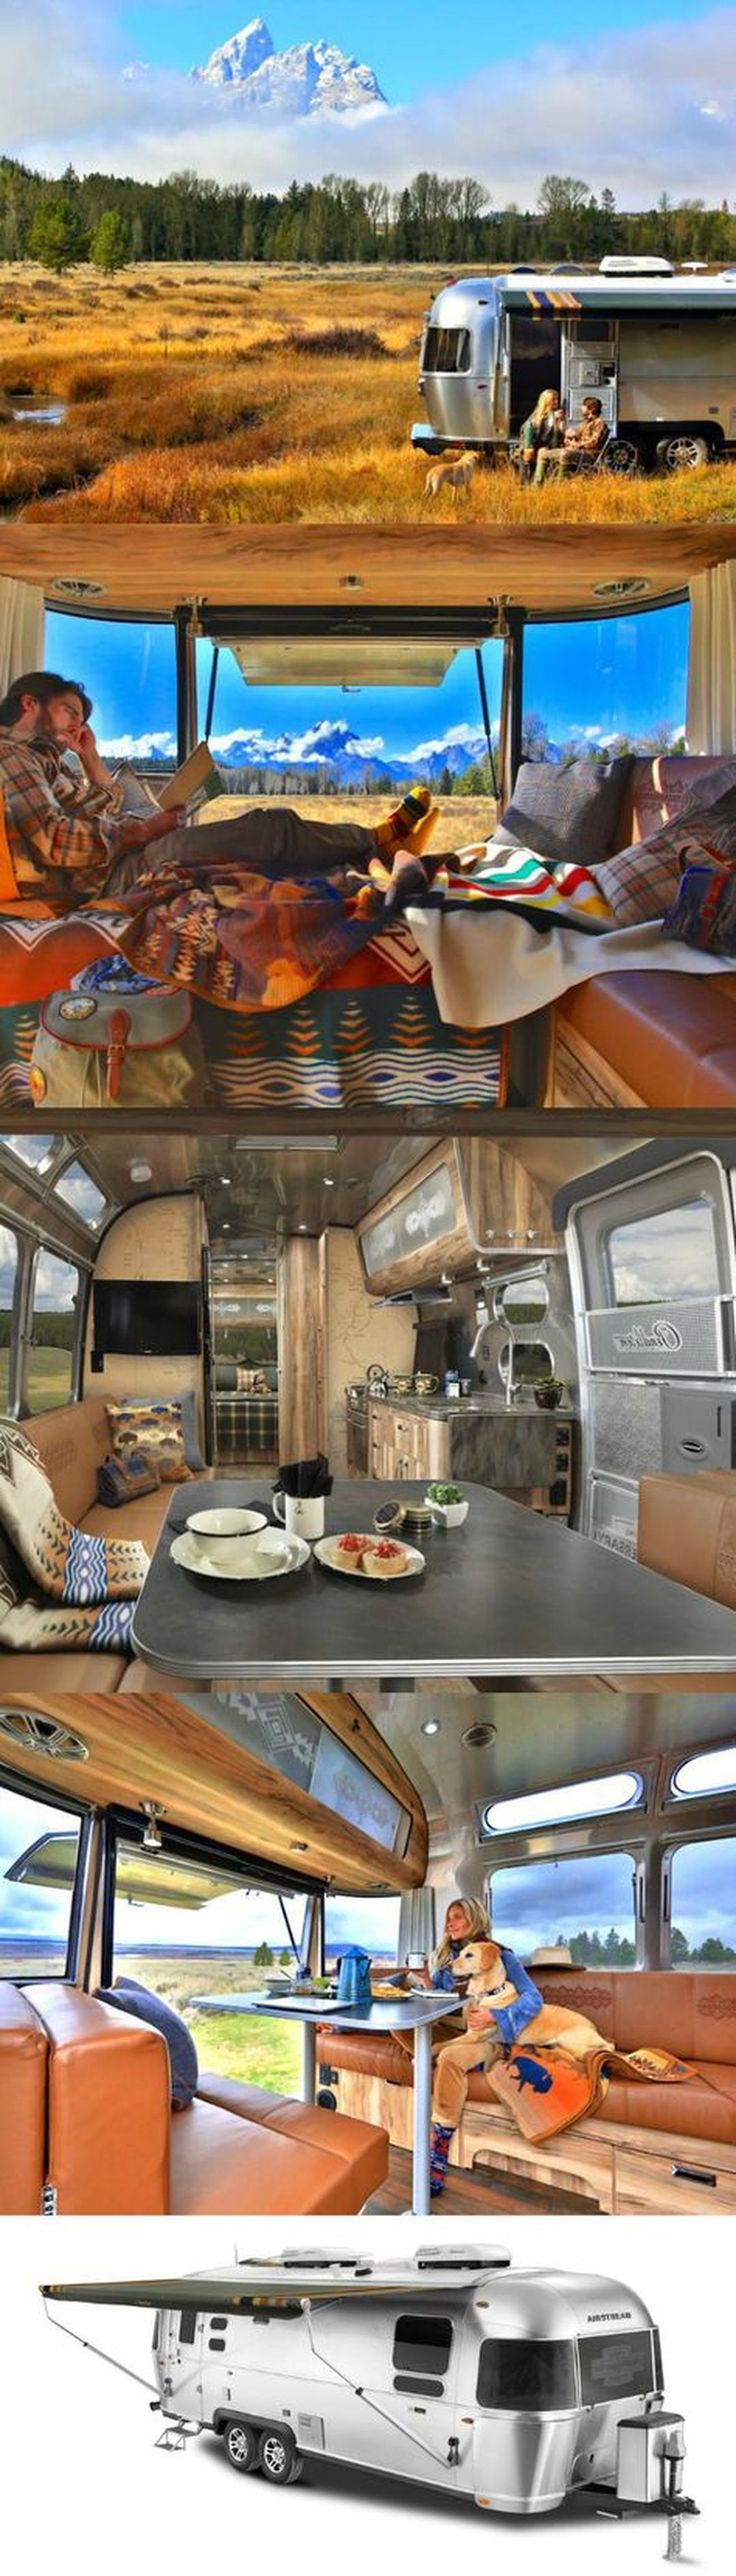 awesome 99 RV Kitchen Accessories for Your Family Trip Awesome http://www.99architecture.com/2017/07/24/99-rv-kitchen-accessories-family-trip-awesome/